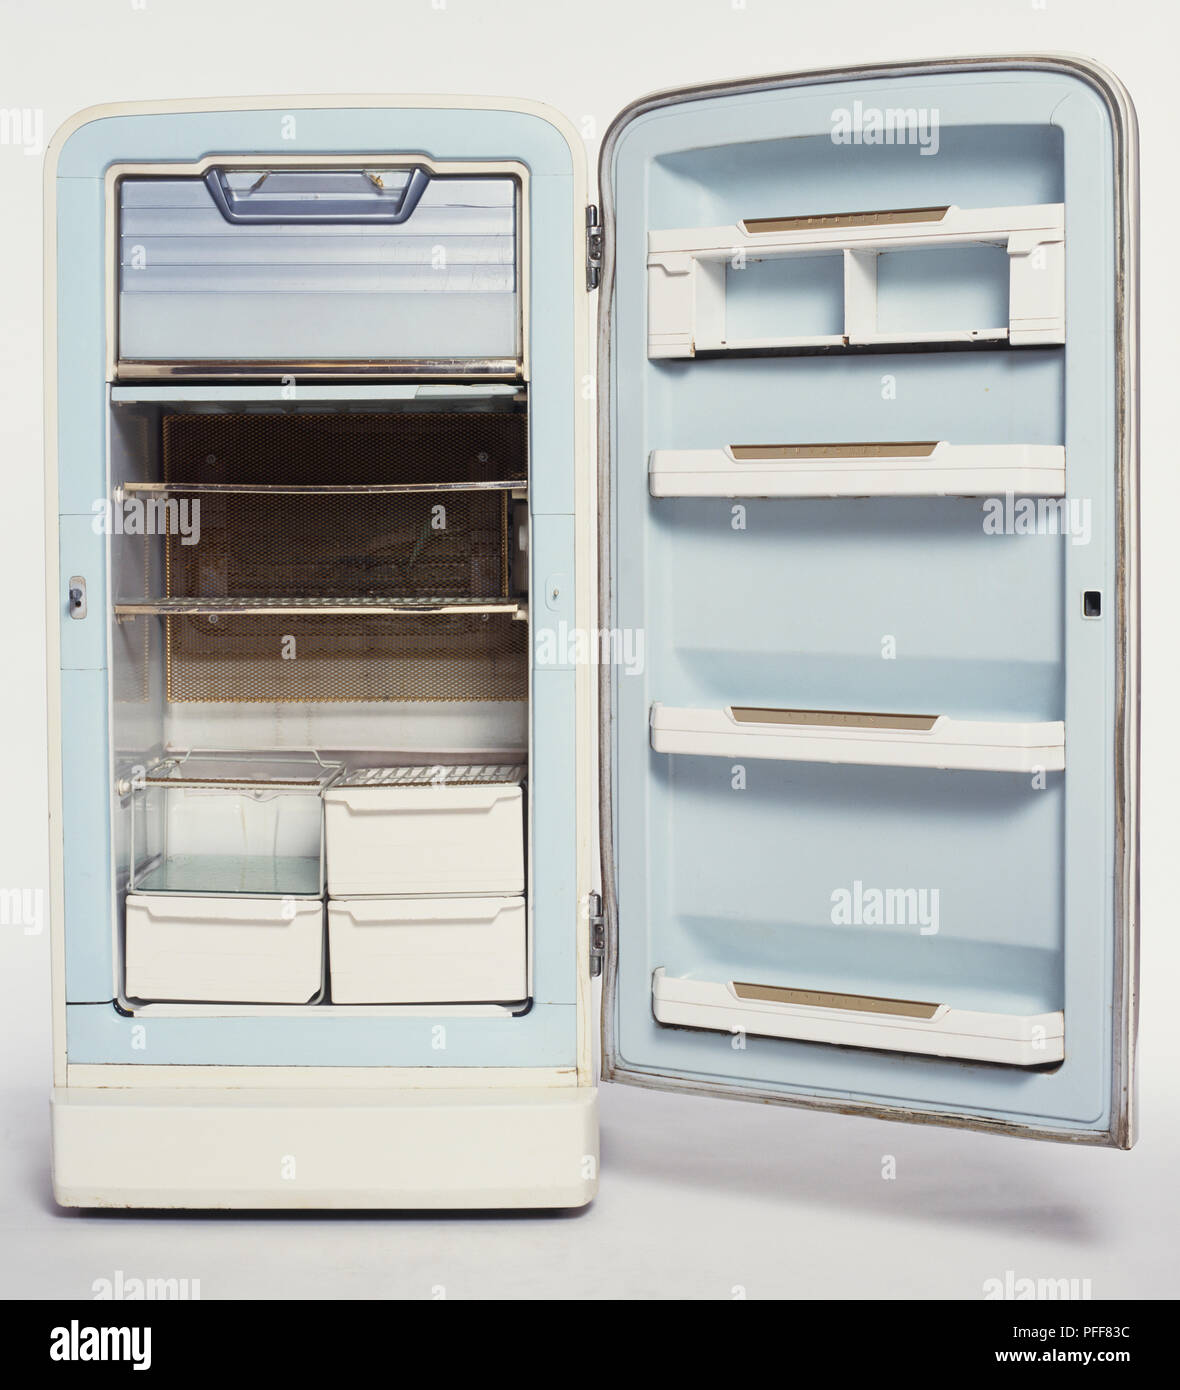 Empty 1950s fridge with its door wide open, front view. - Stock Image